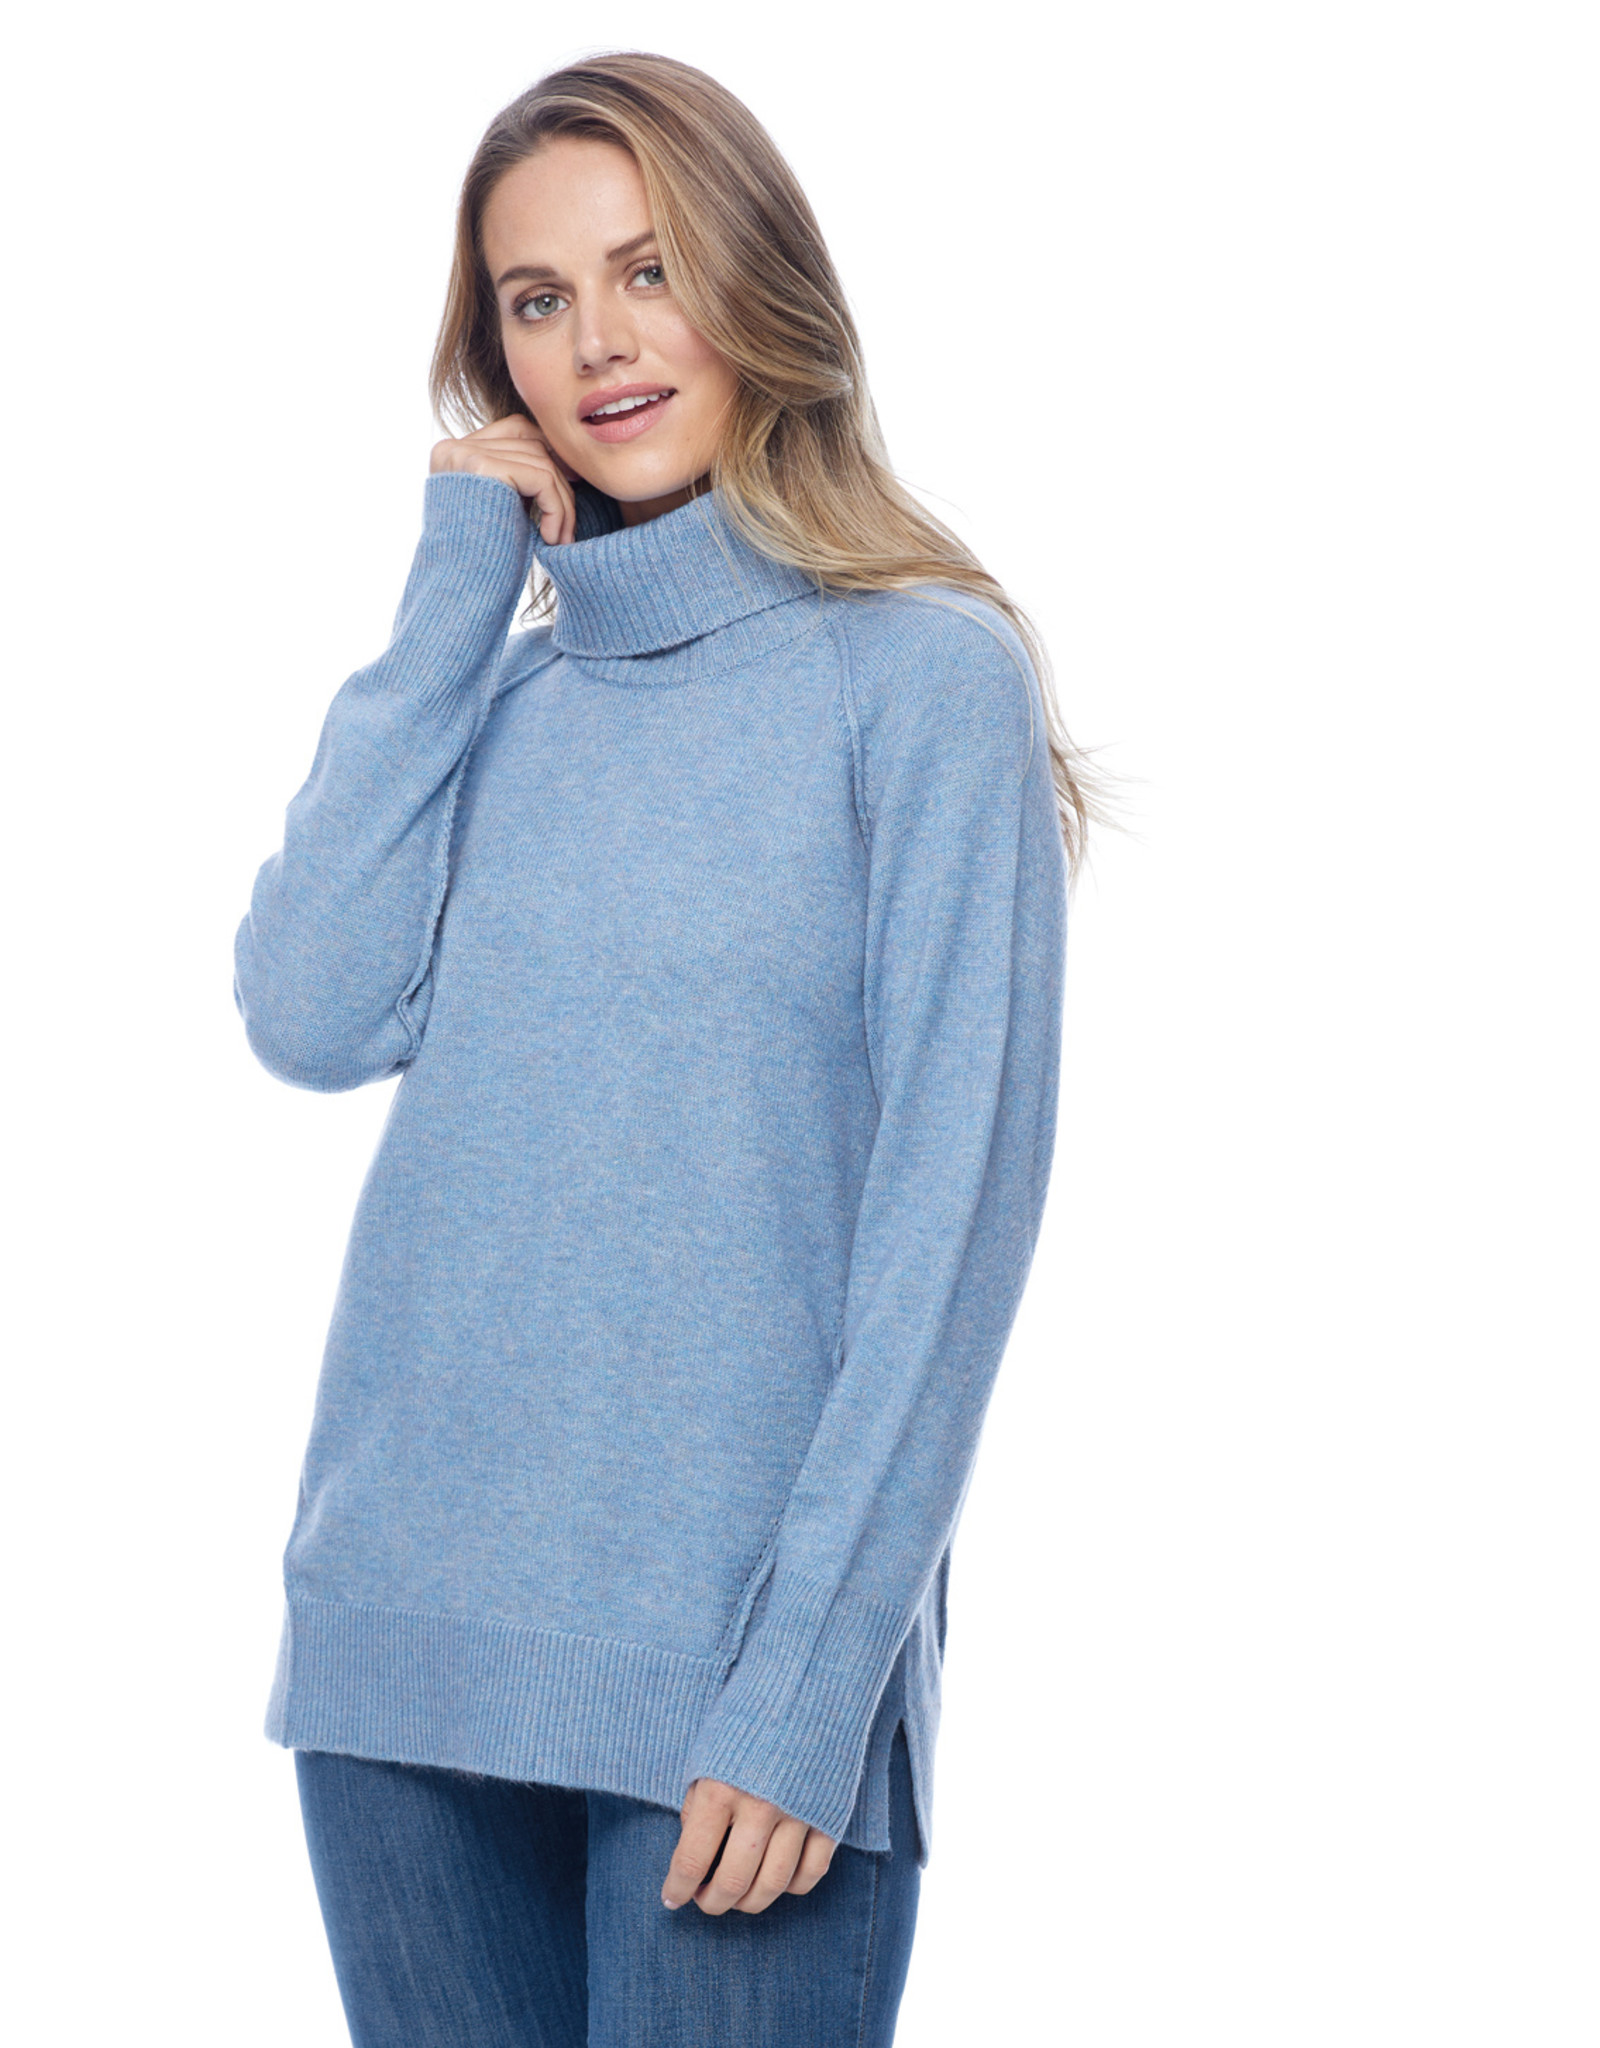 French Dressing Jeans FDJ 1841333 Relaxed Cowl Neck Sweater